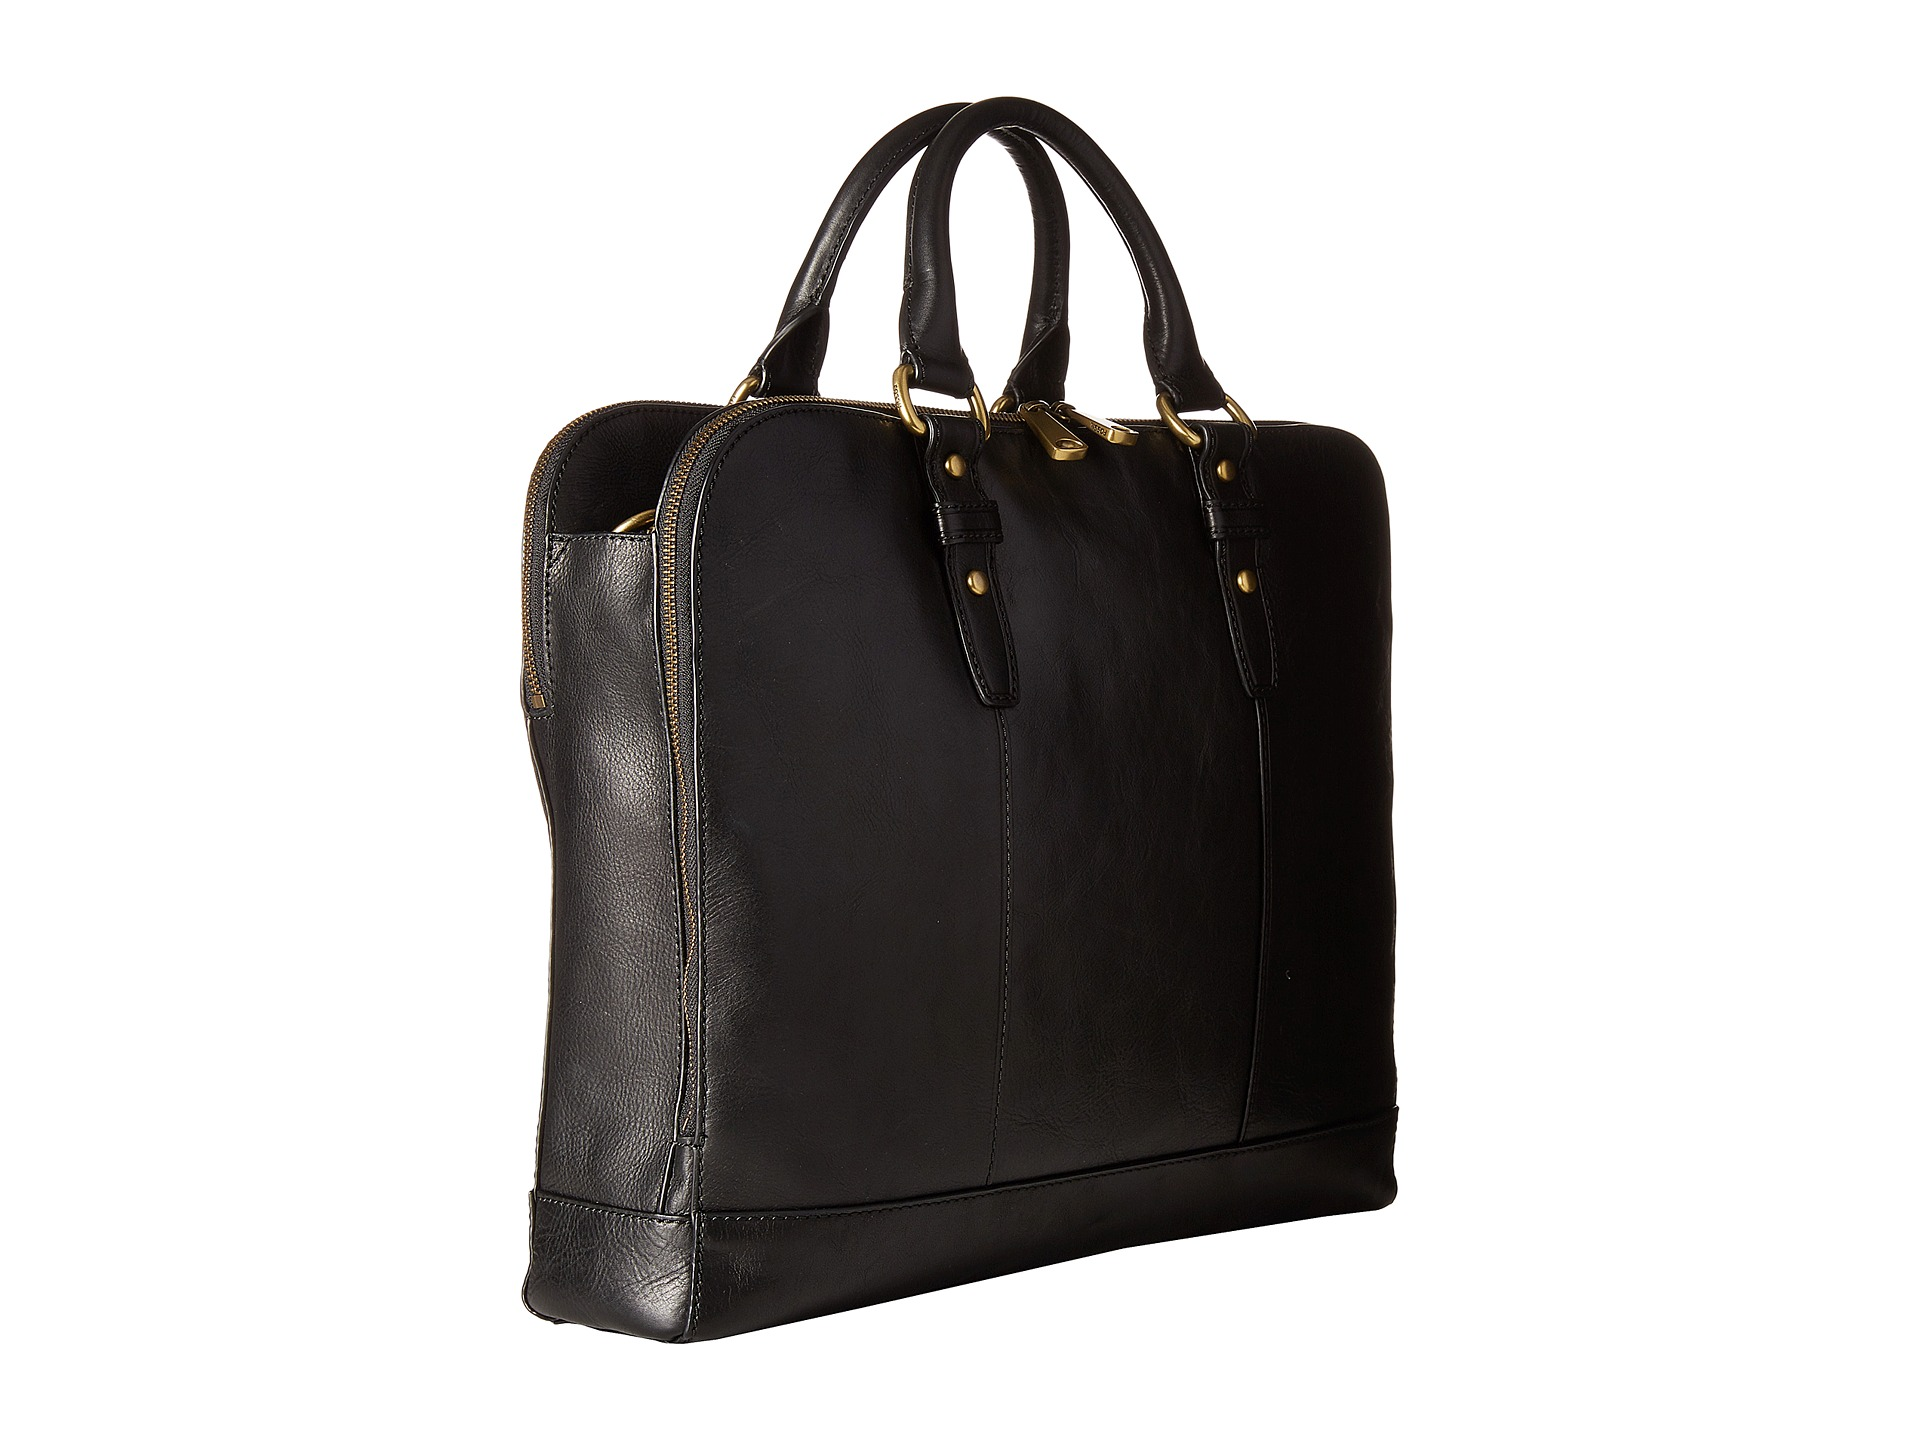 Check the variety of brown extra large tote bags in rich leather and expertly crafted with distinctive gold hardware from MICHAEL Michael Kors. Whether you need a handbag that can hold your laptop inside or important files from work, you'll discover a spacious and luxurious option that will definitely turn heads.